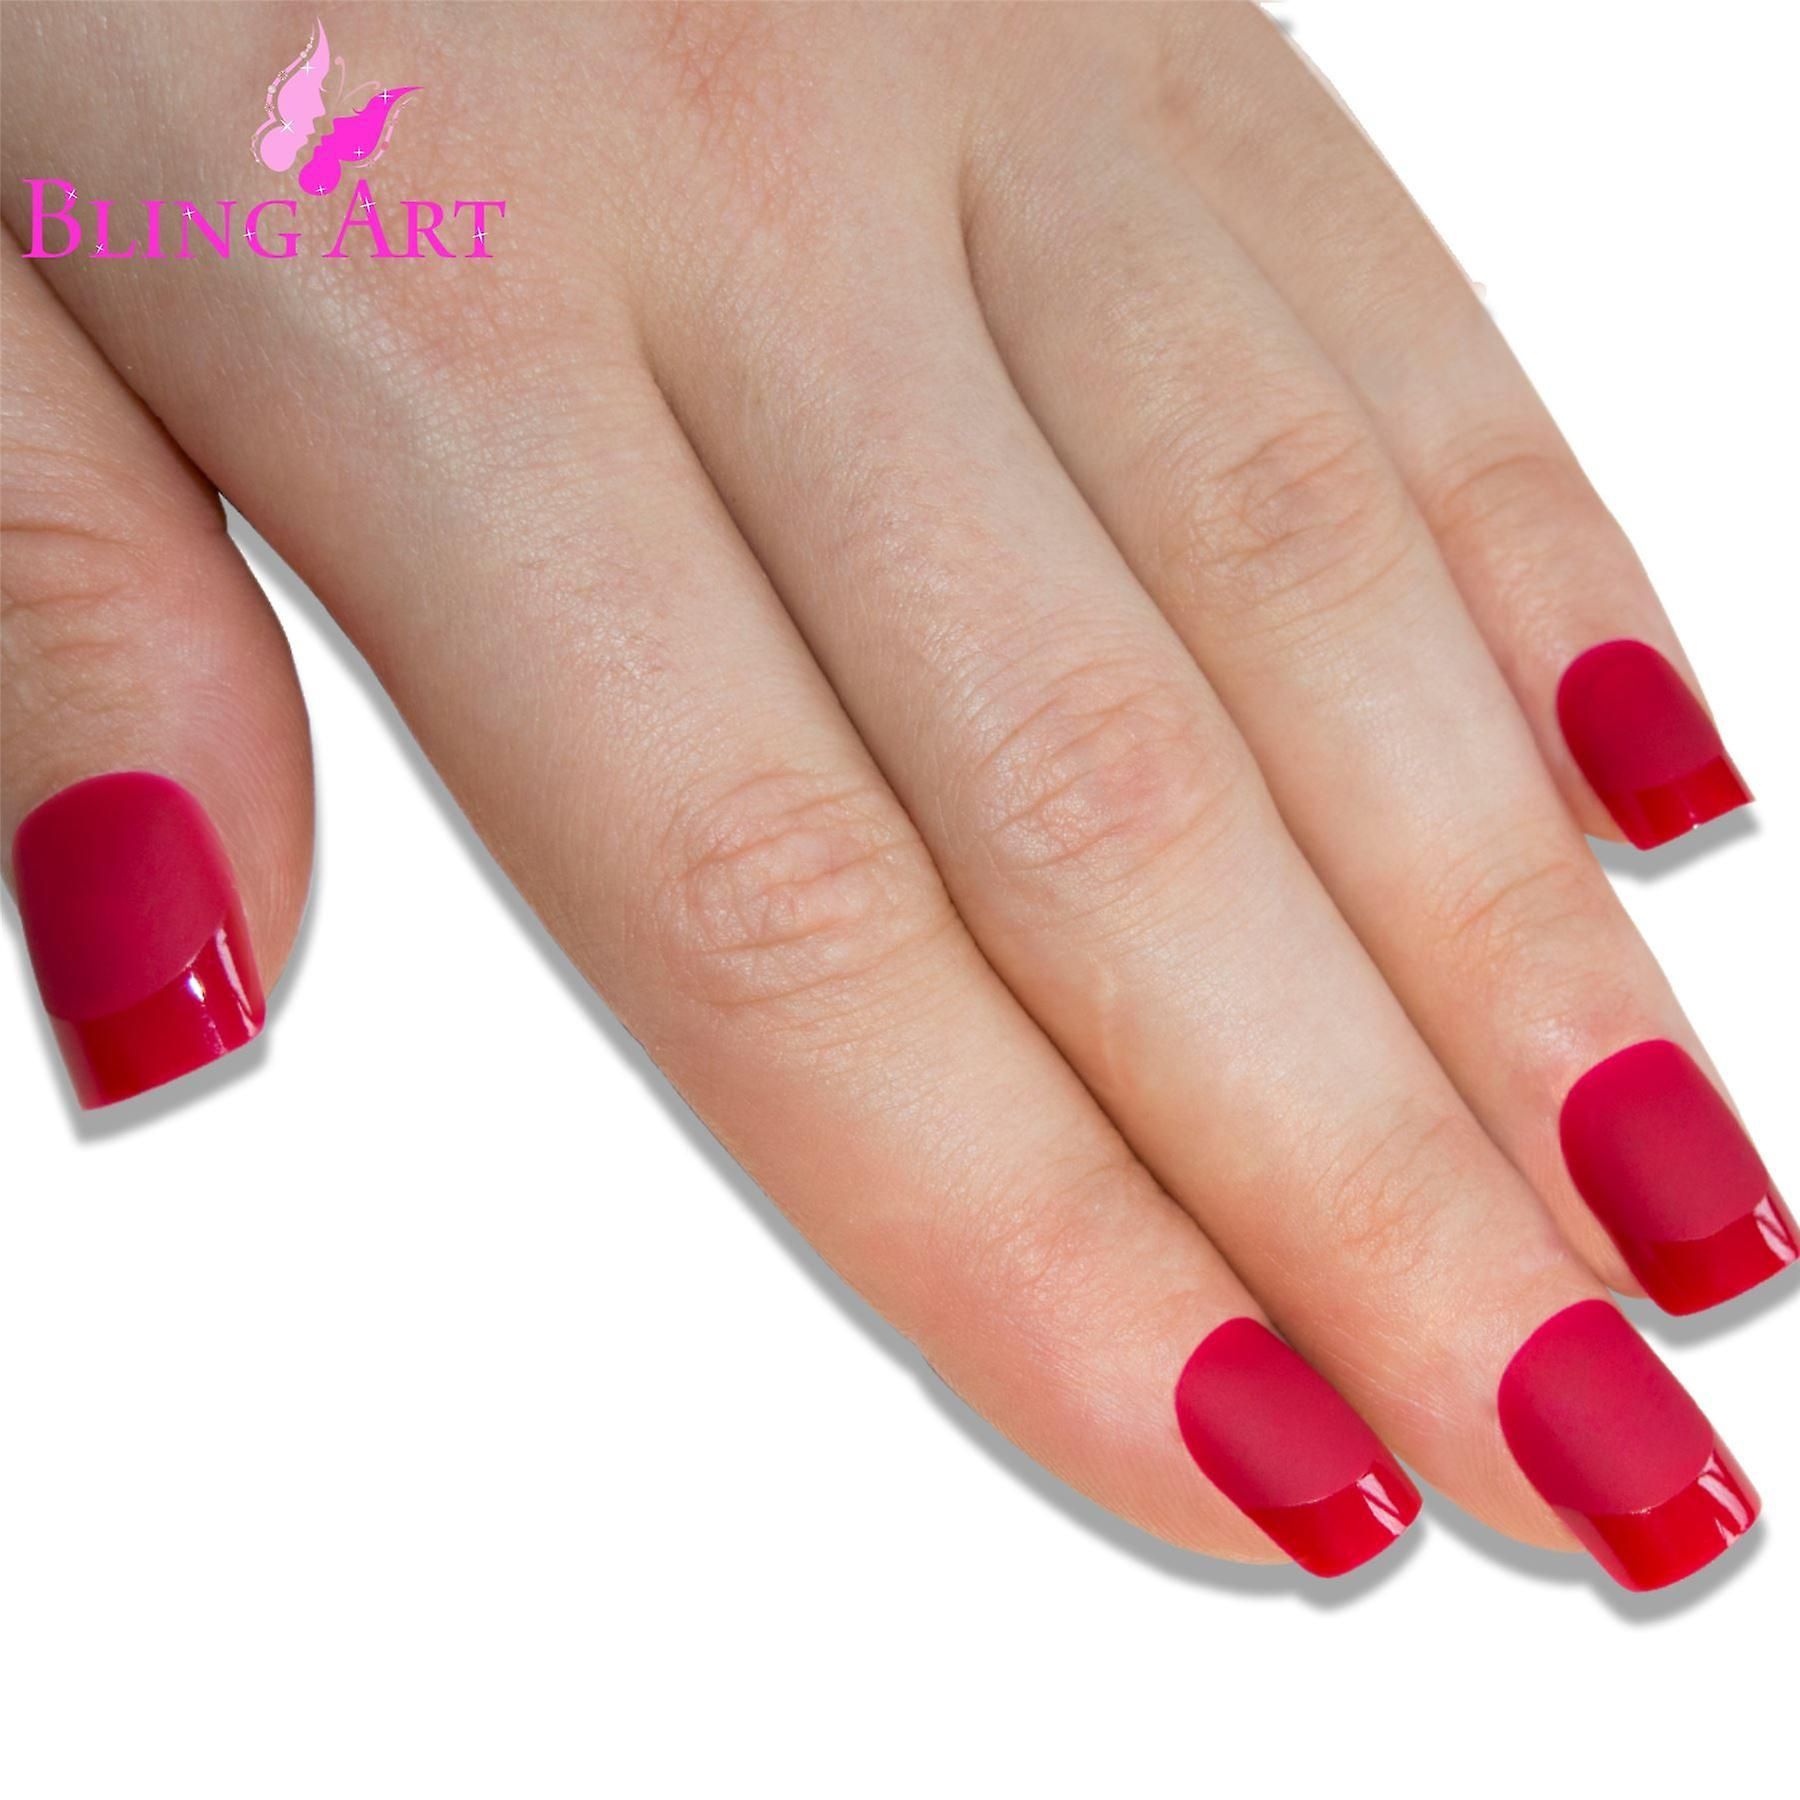 False nails by bling art red matte french manicure fake medium tips with glue